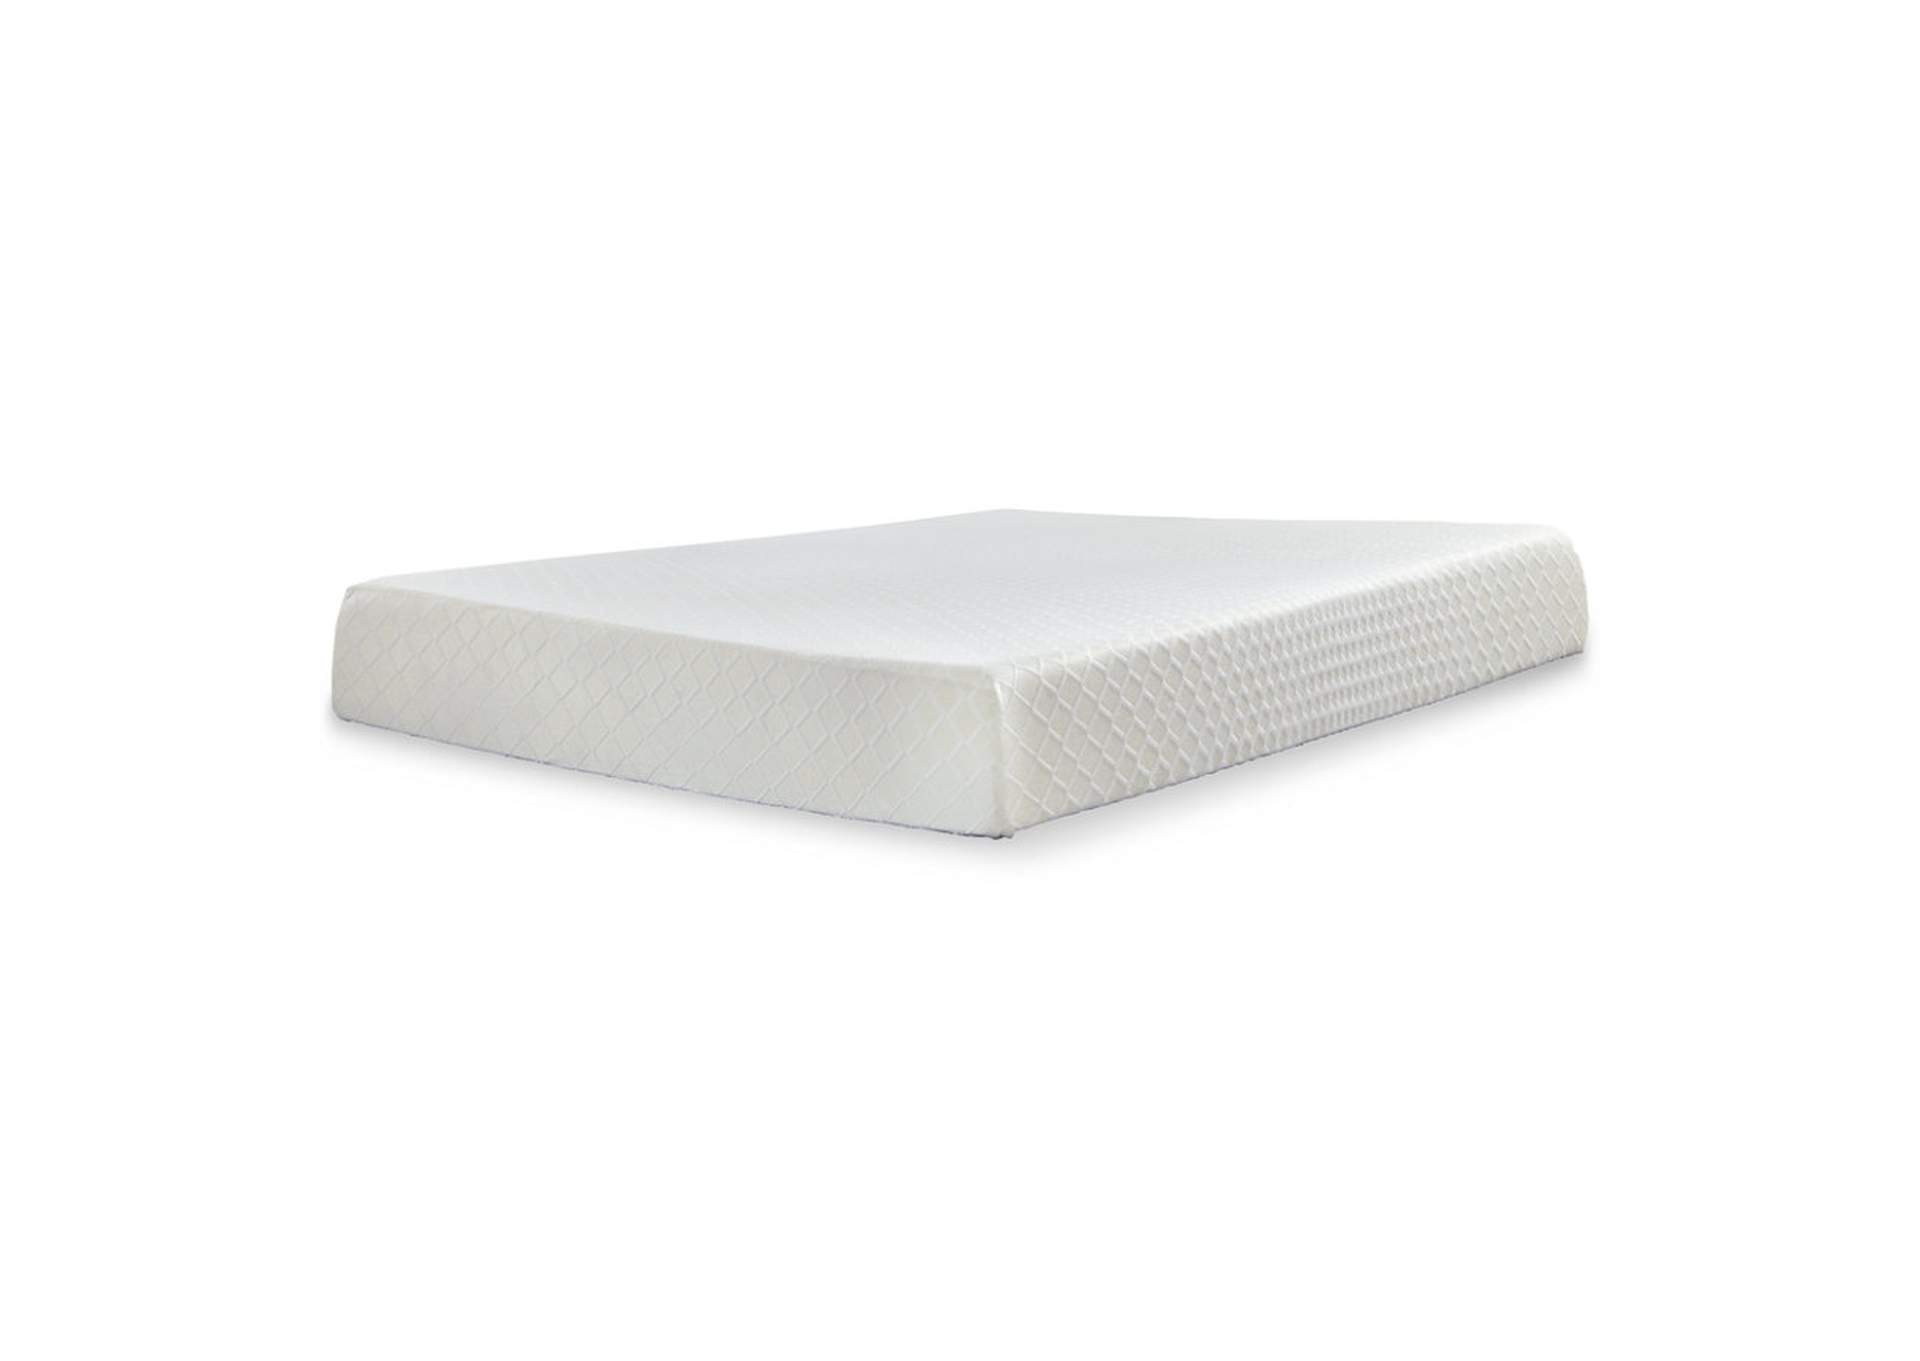 10 Inch Chime Memory Foam White King Mattress,Sierra Sleep by Ashley